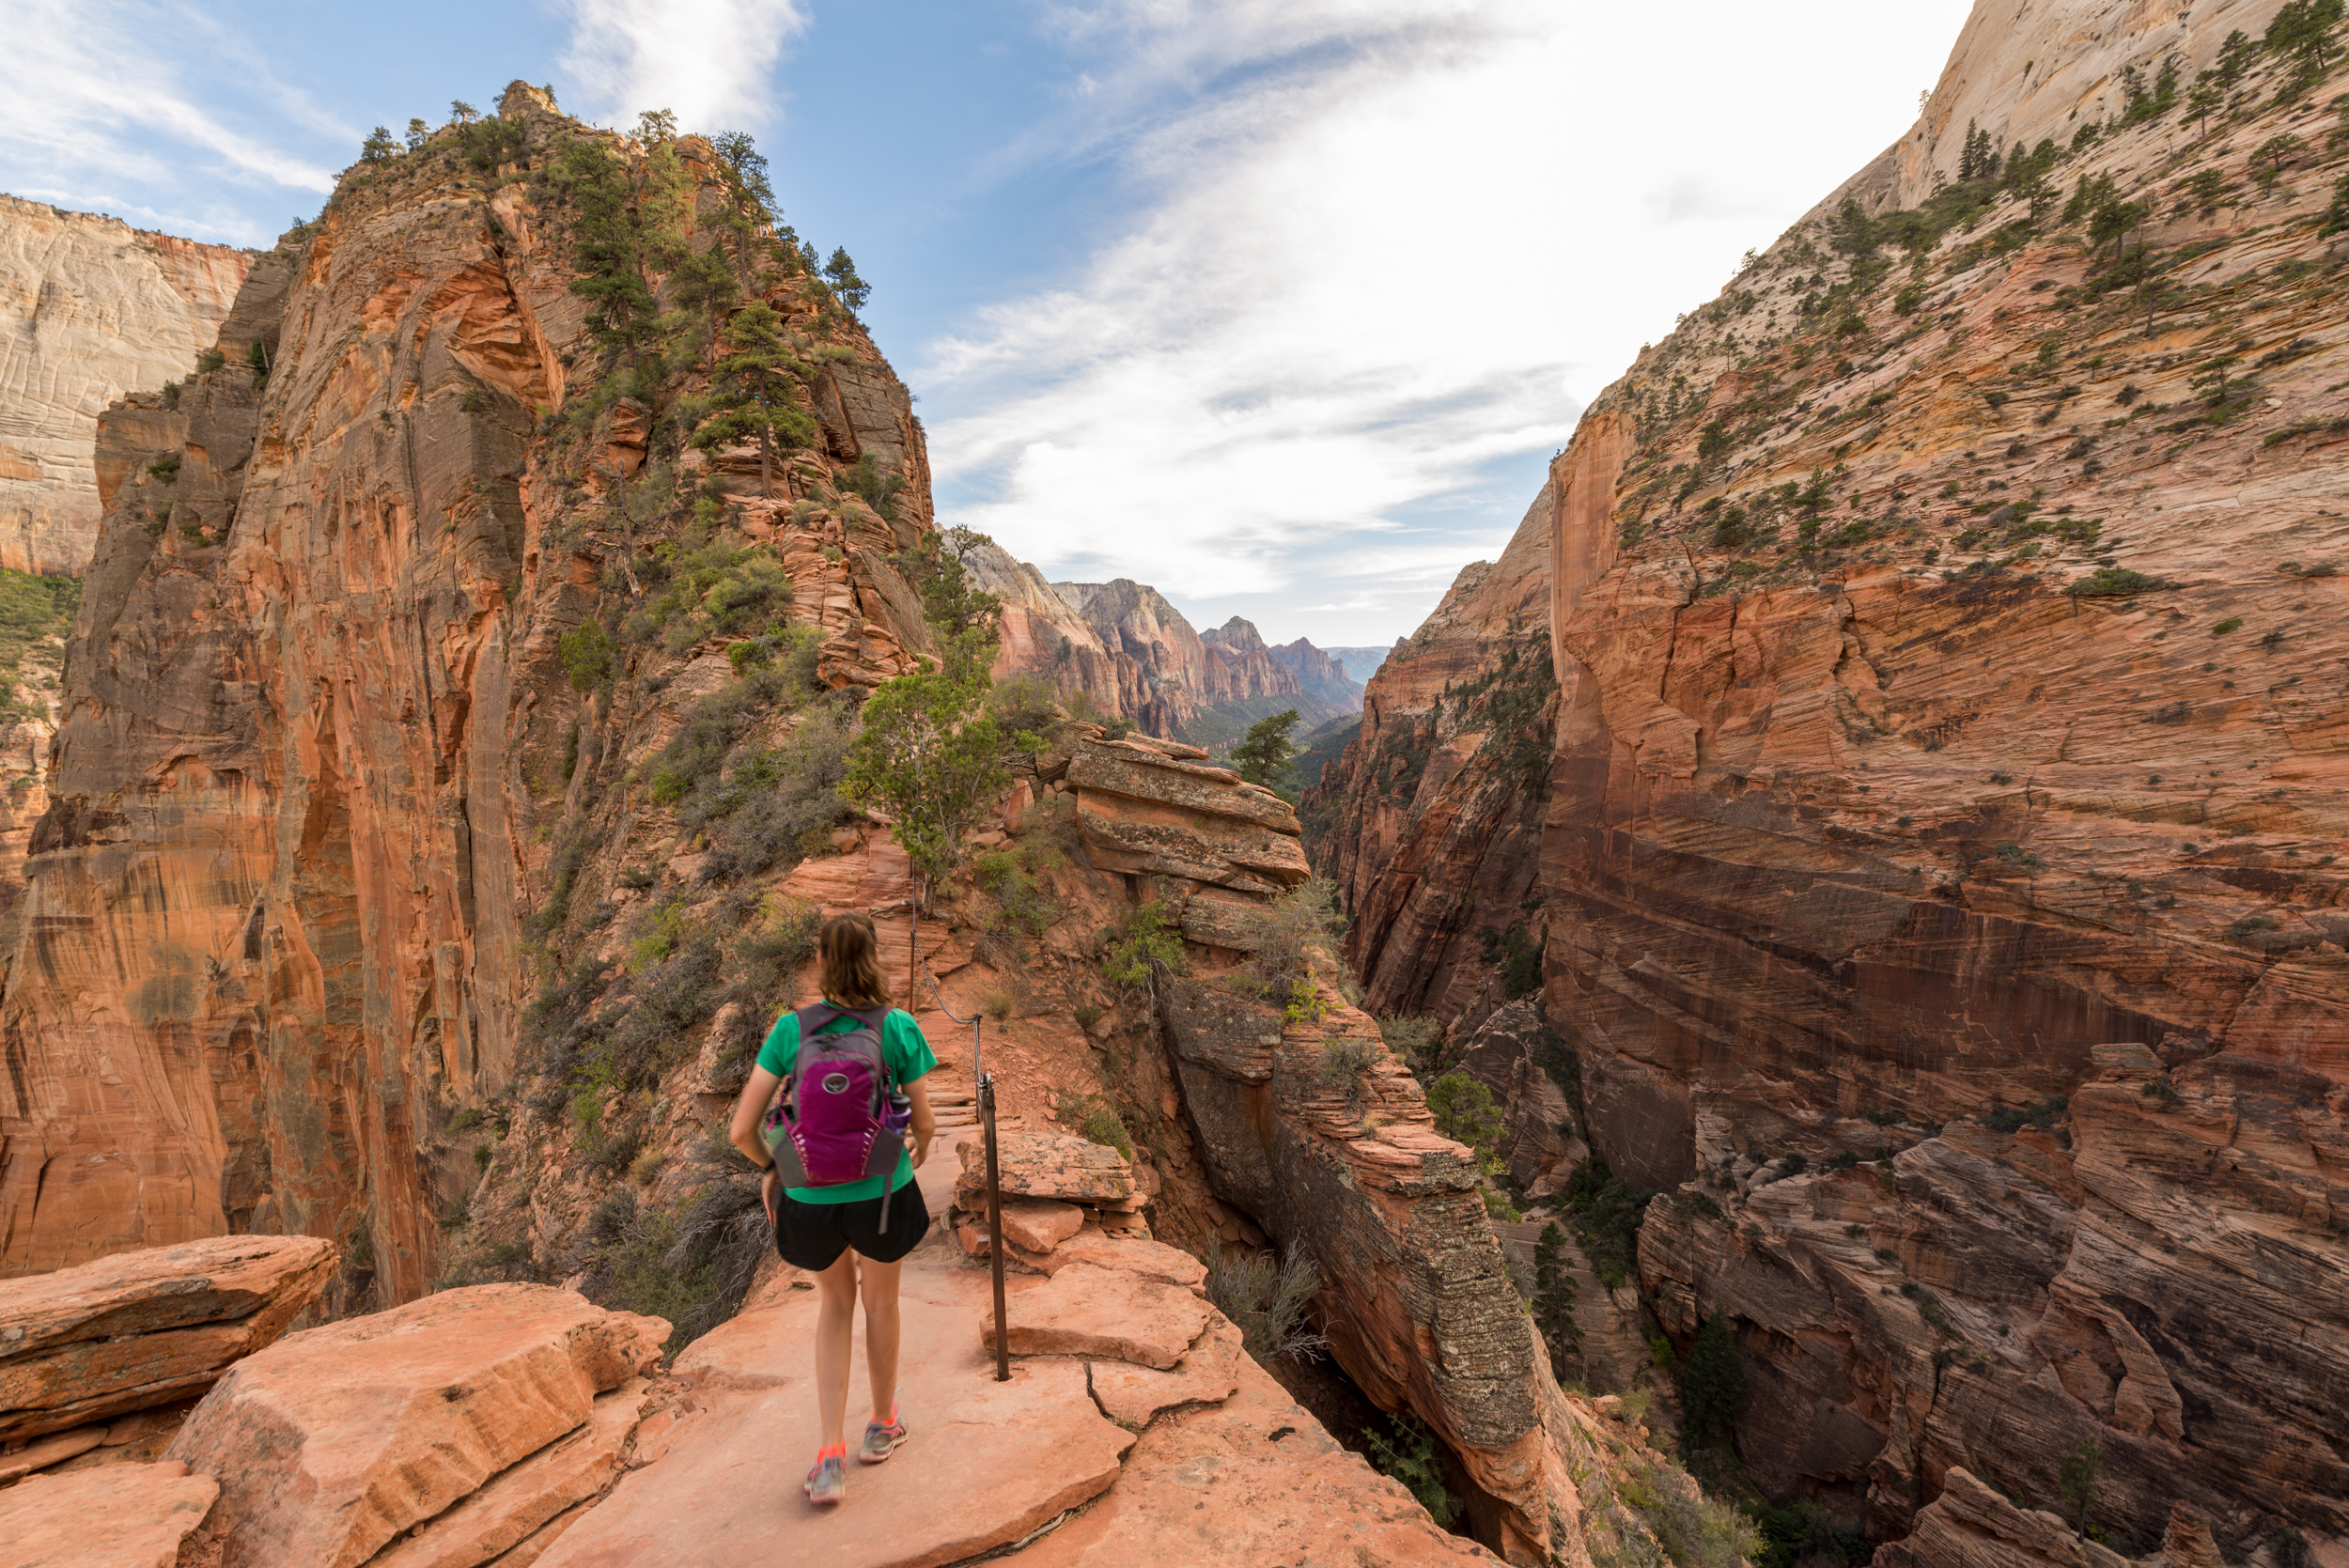 The top of Angels Landing is in sight as you hike across the narrow spine. A chain runs along this section to help you feel a little safer.